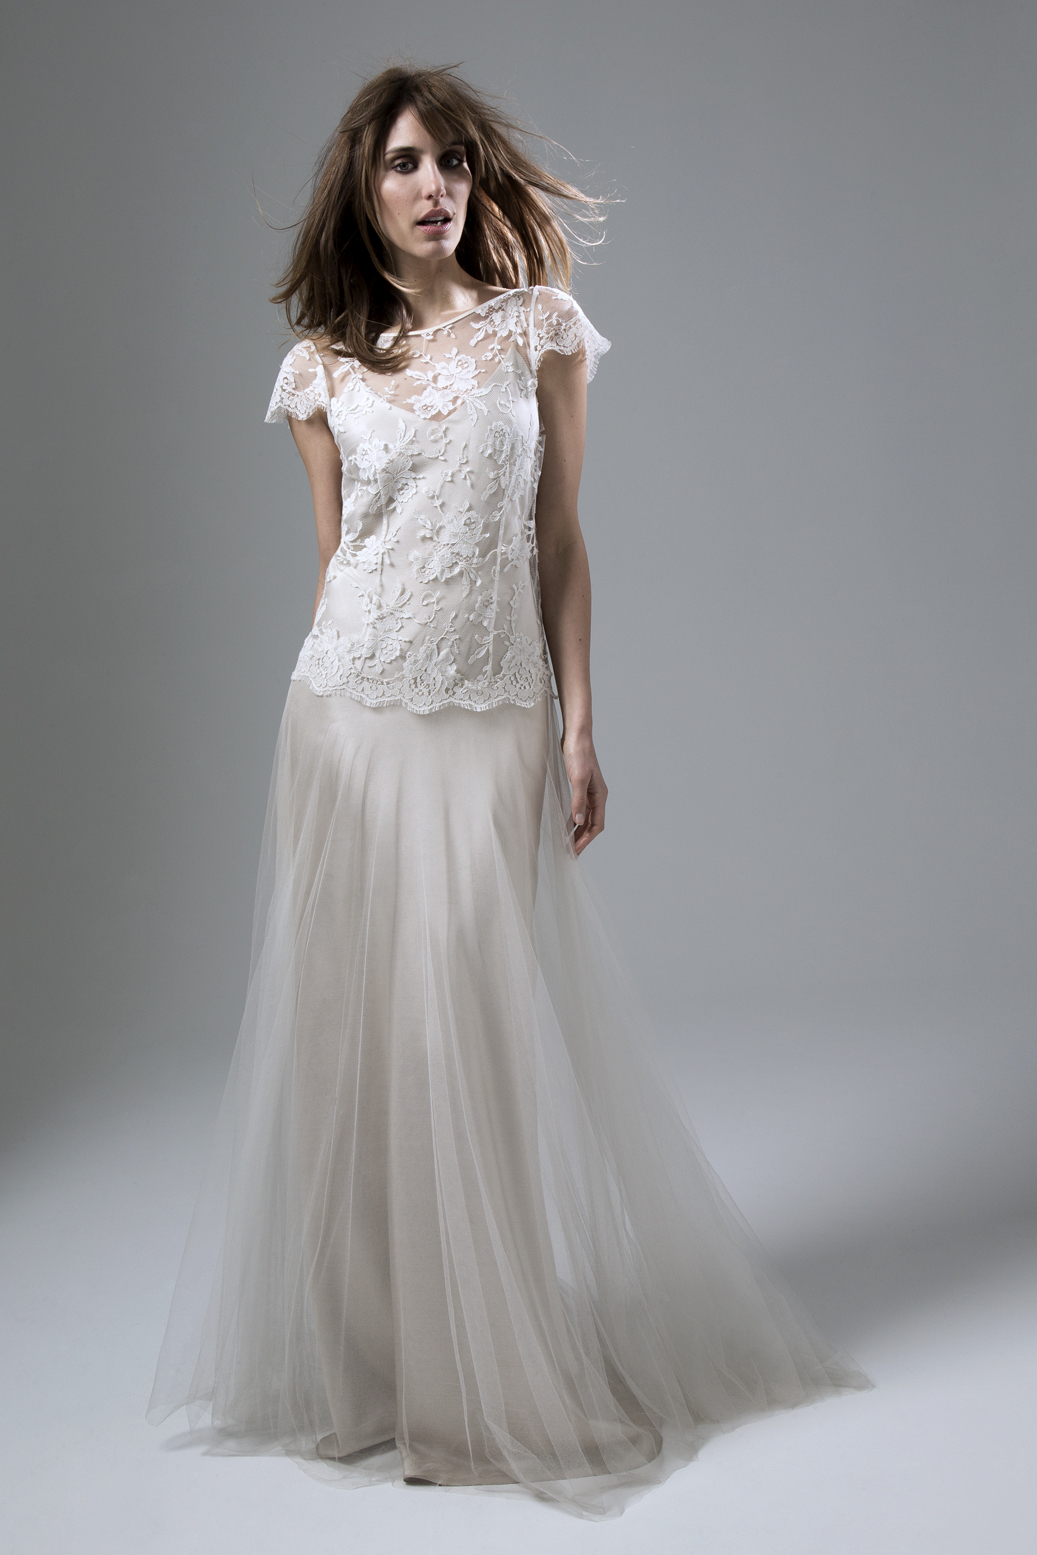 Iris Classic Wedding Dress in French Lace and Silk Tulle with a Luxury Simple Blush or Ivory Slip by Halfpenny London